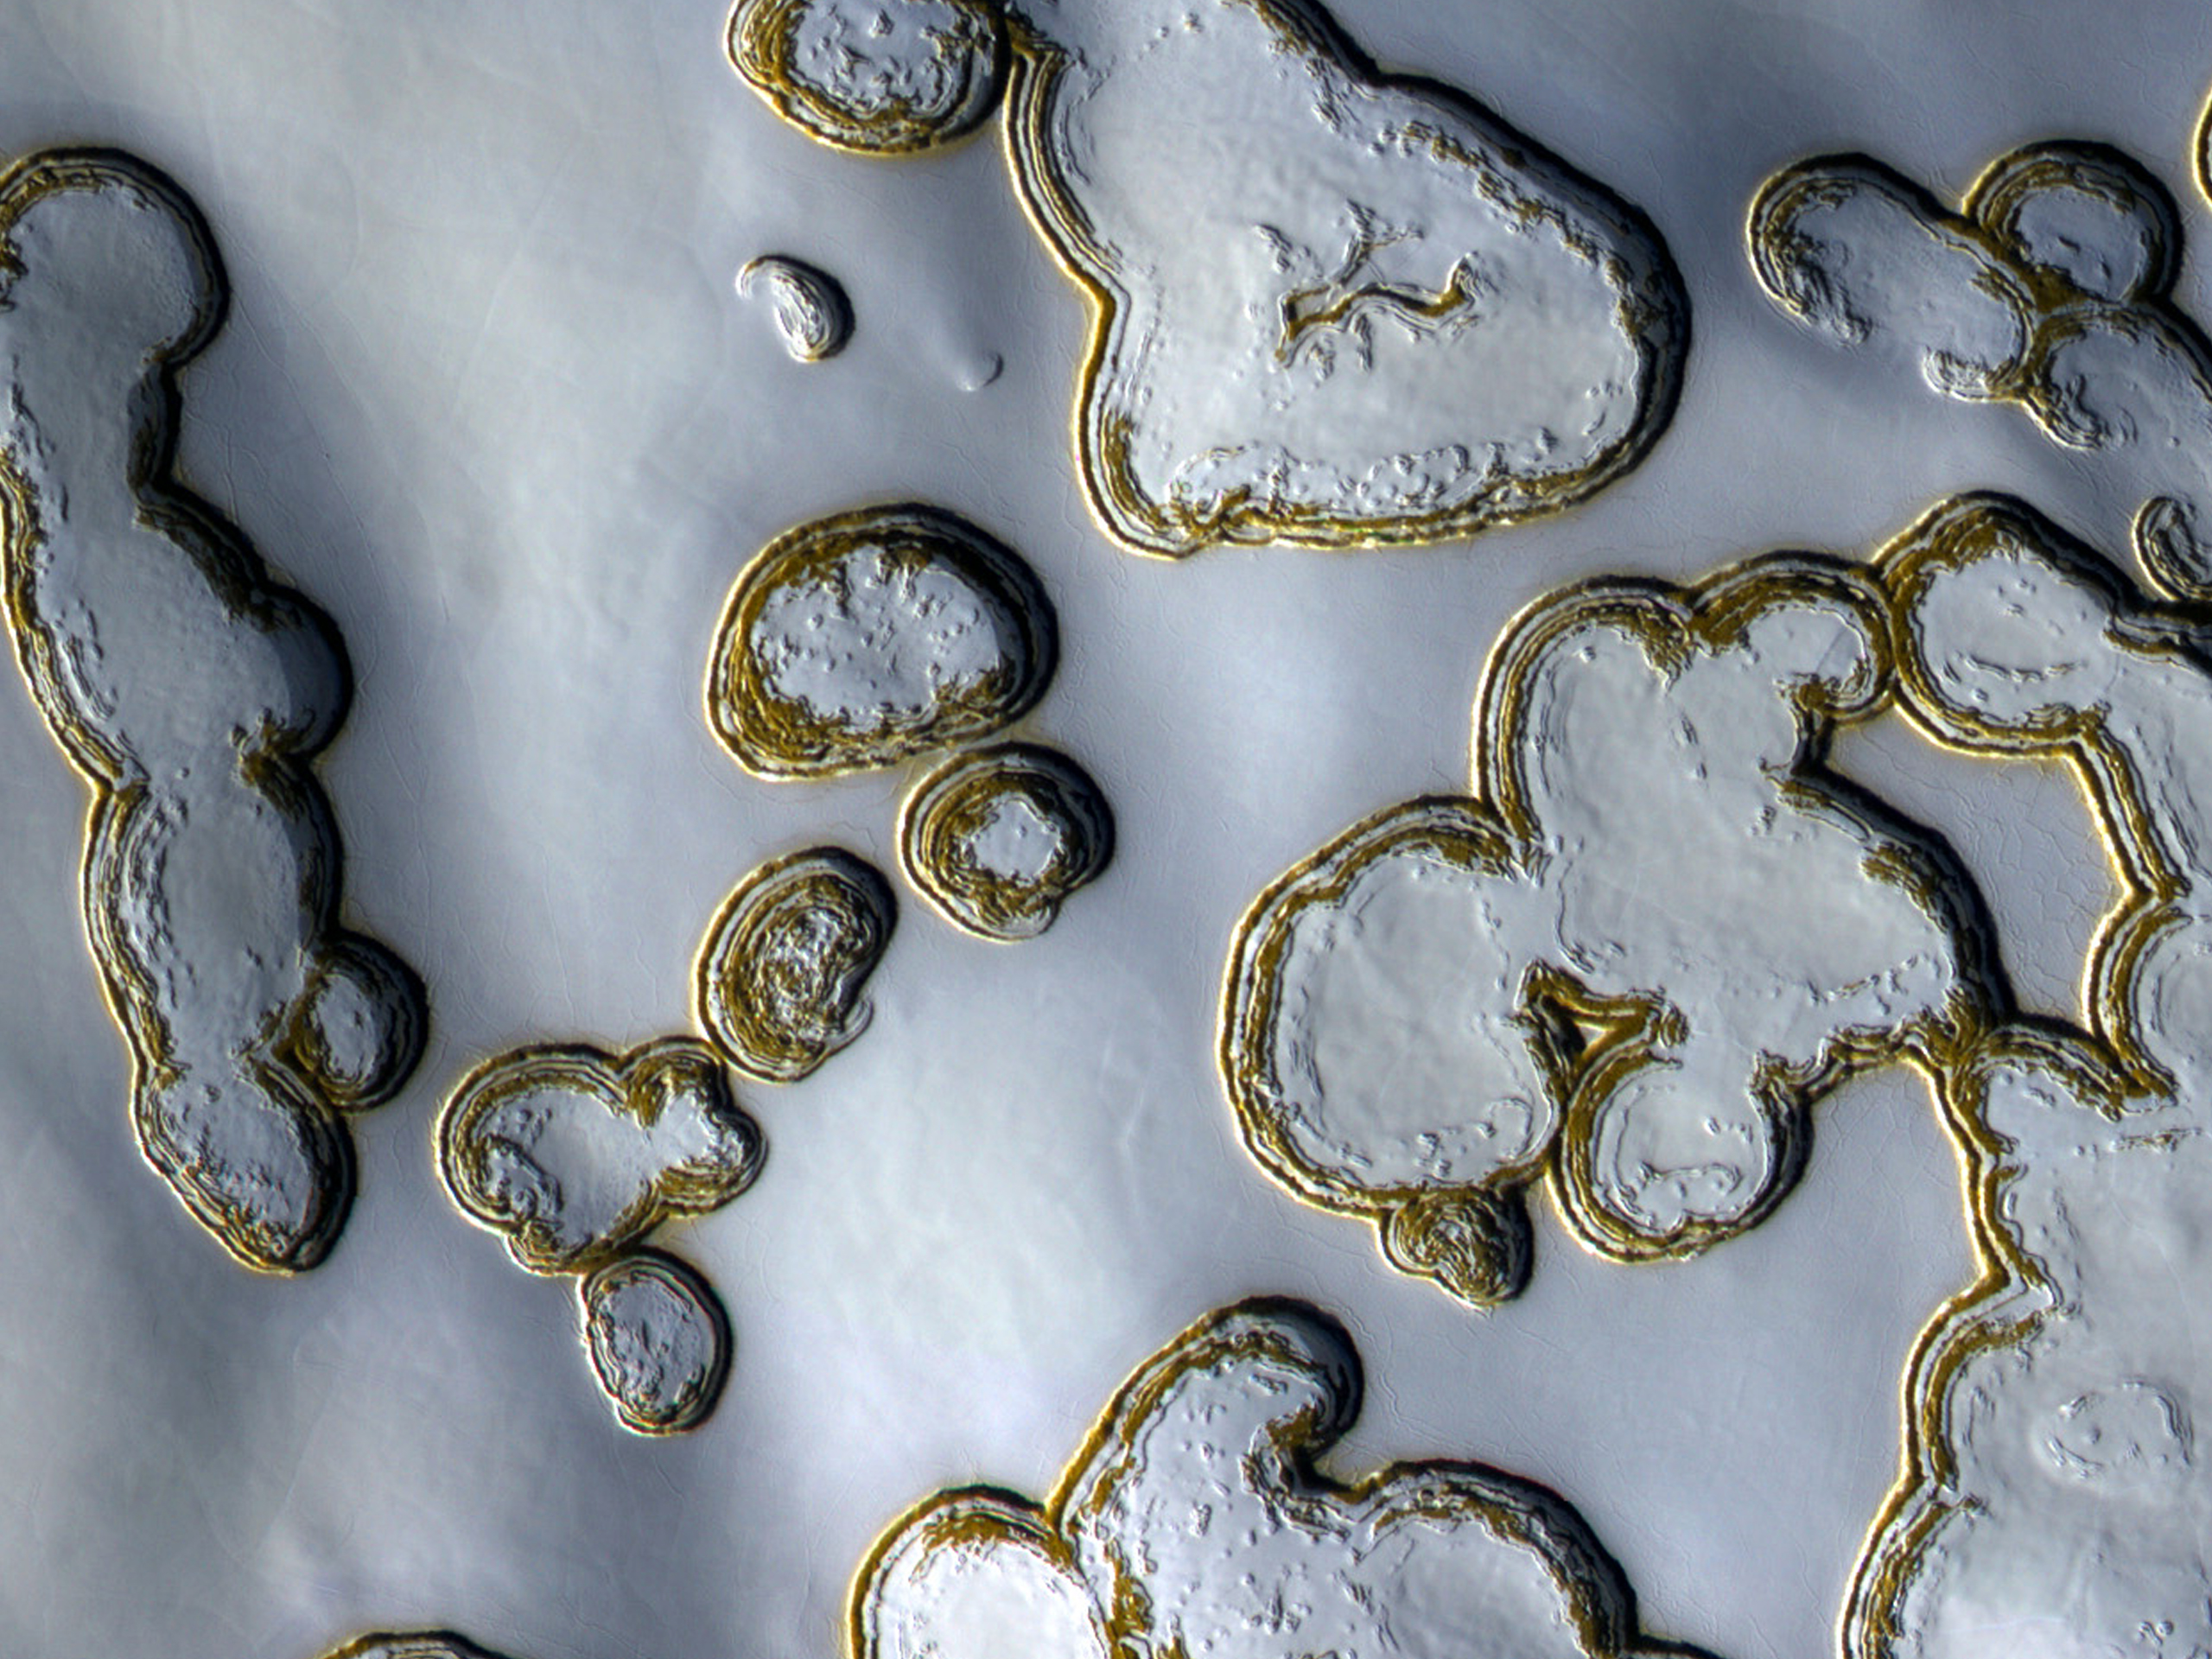 Evaporation in the southern polar ice cap of Mars.